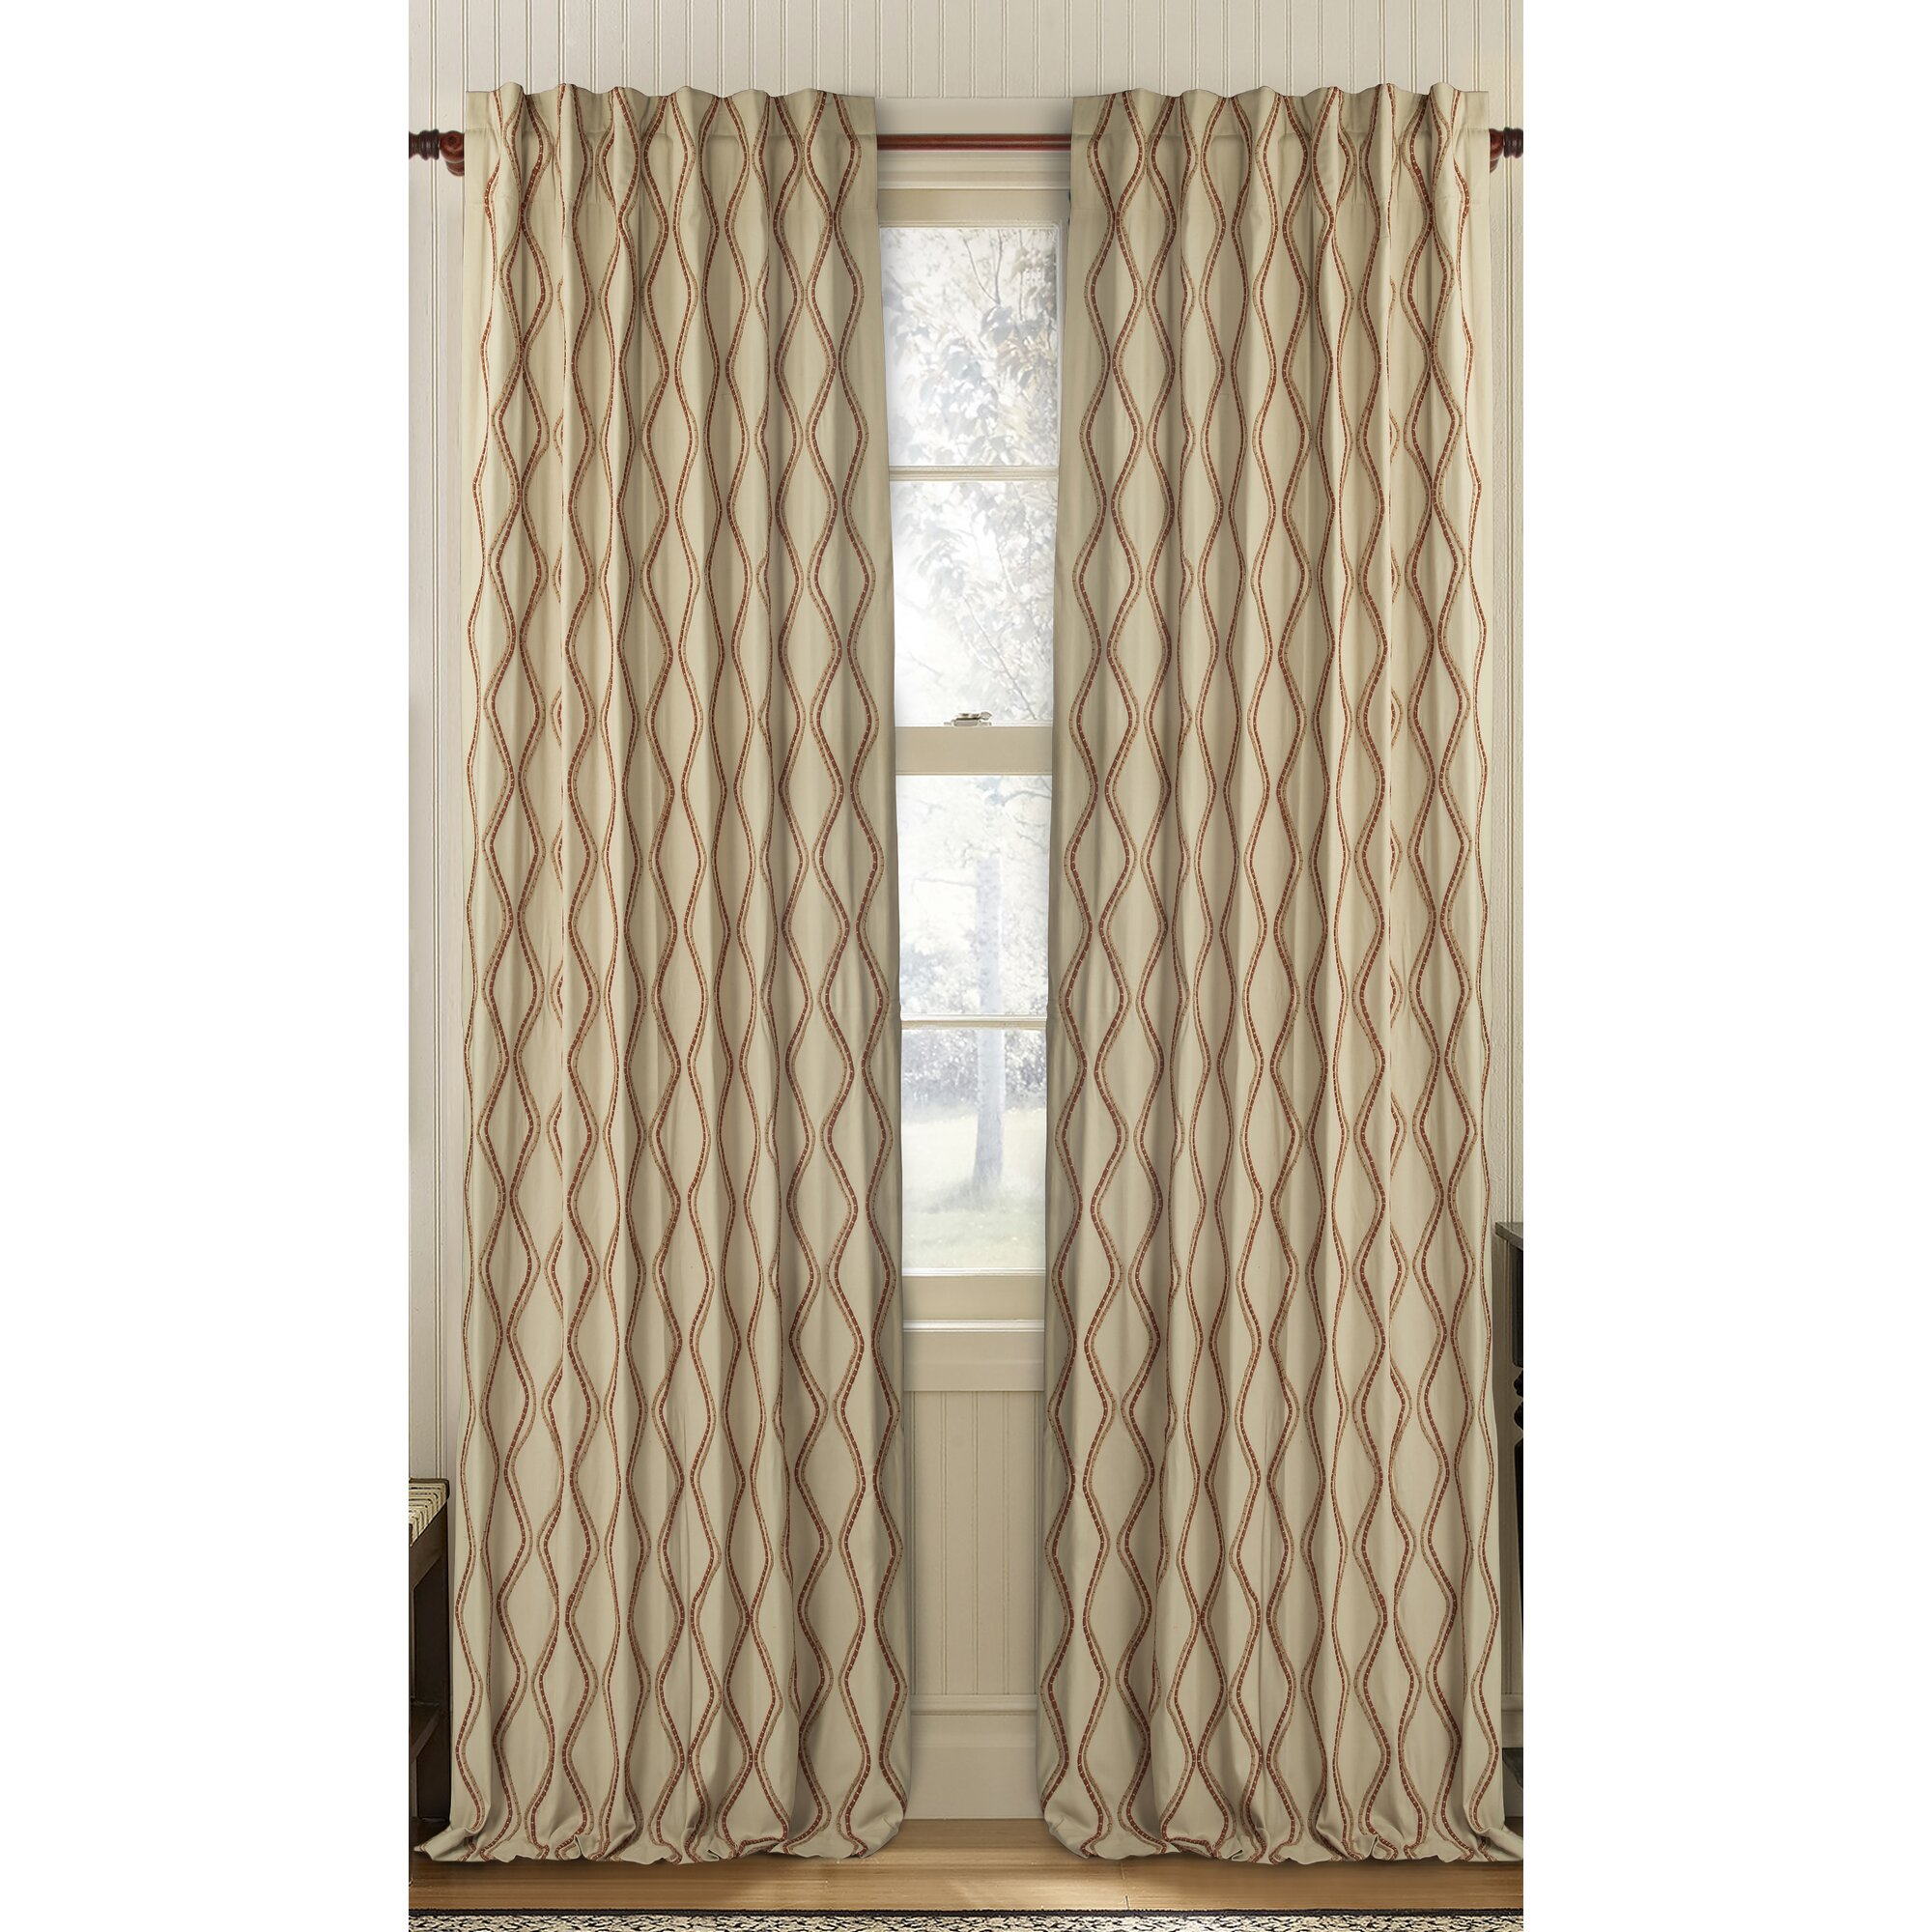 Gracious Living Enlace Geometric Semi Sheer Rod Pocket